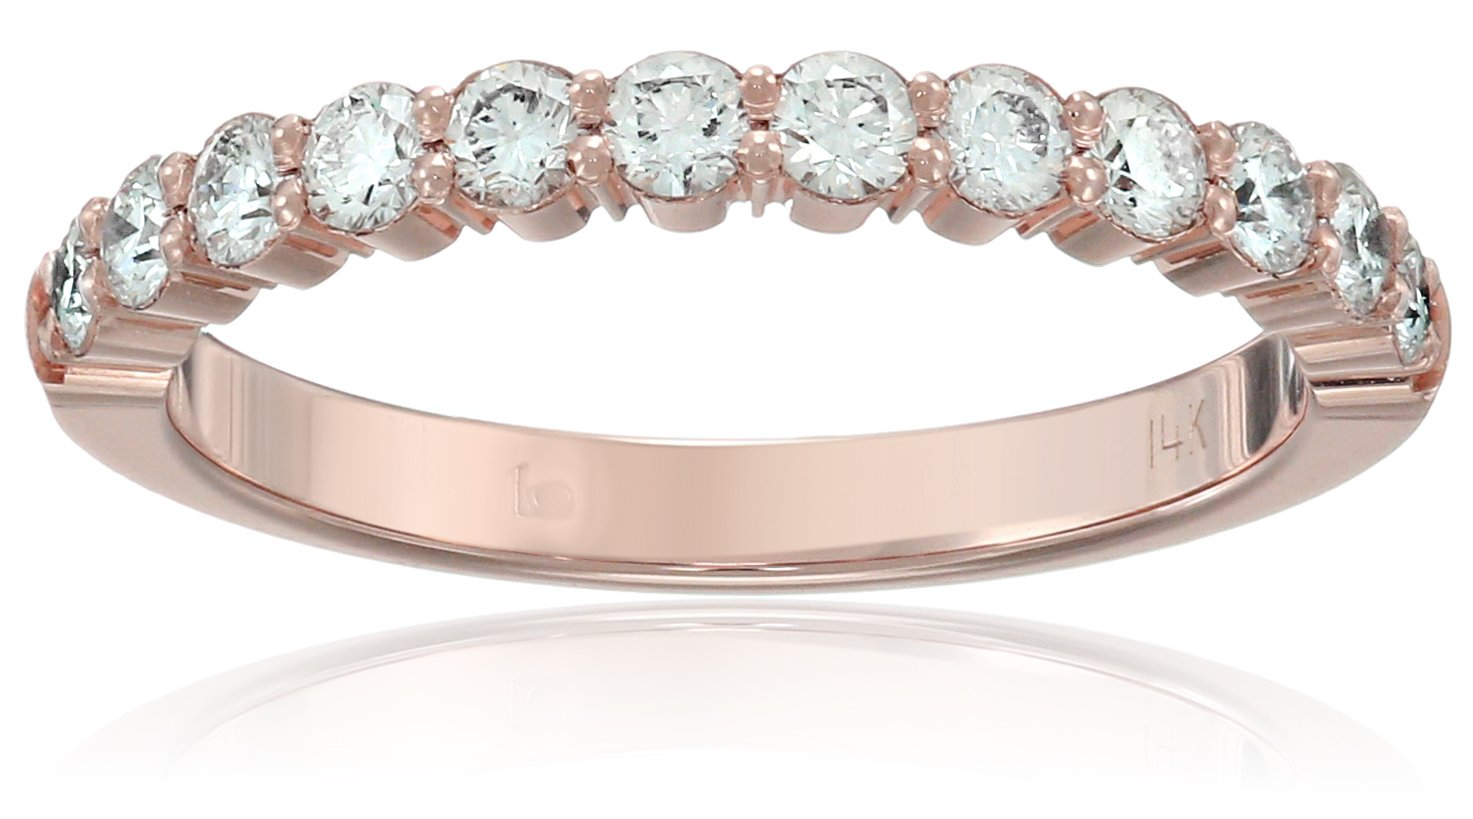 14k Rose Gold 2.5mm Shared Prong Wedding Band Stackable Ring (1/2cttw, SI1, G Color), Size 7